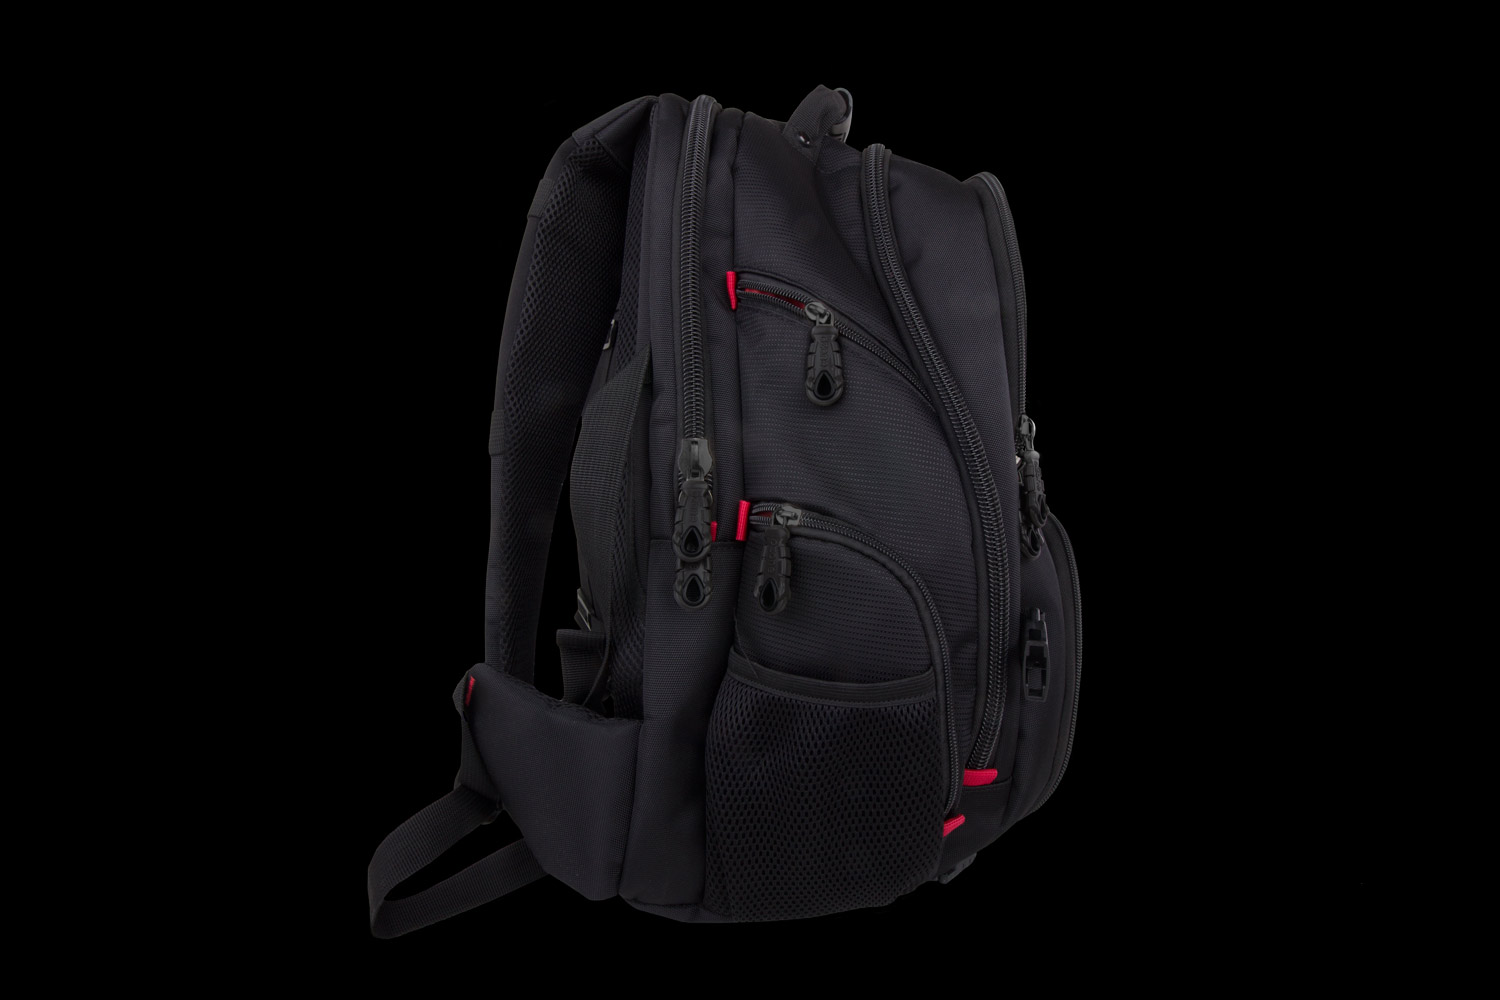 survivor - Pro Gaming Backpack - Accesories - 3